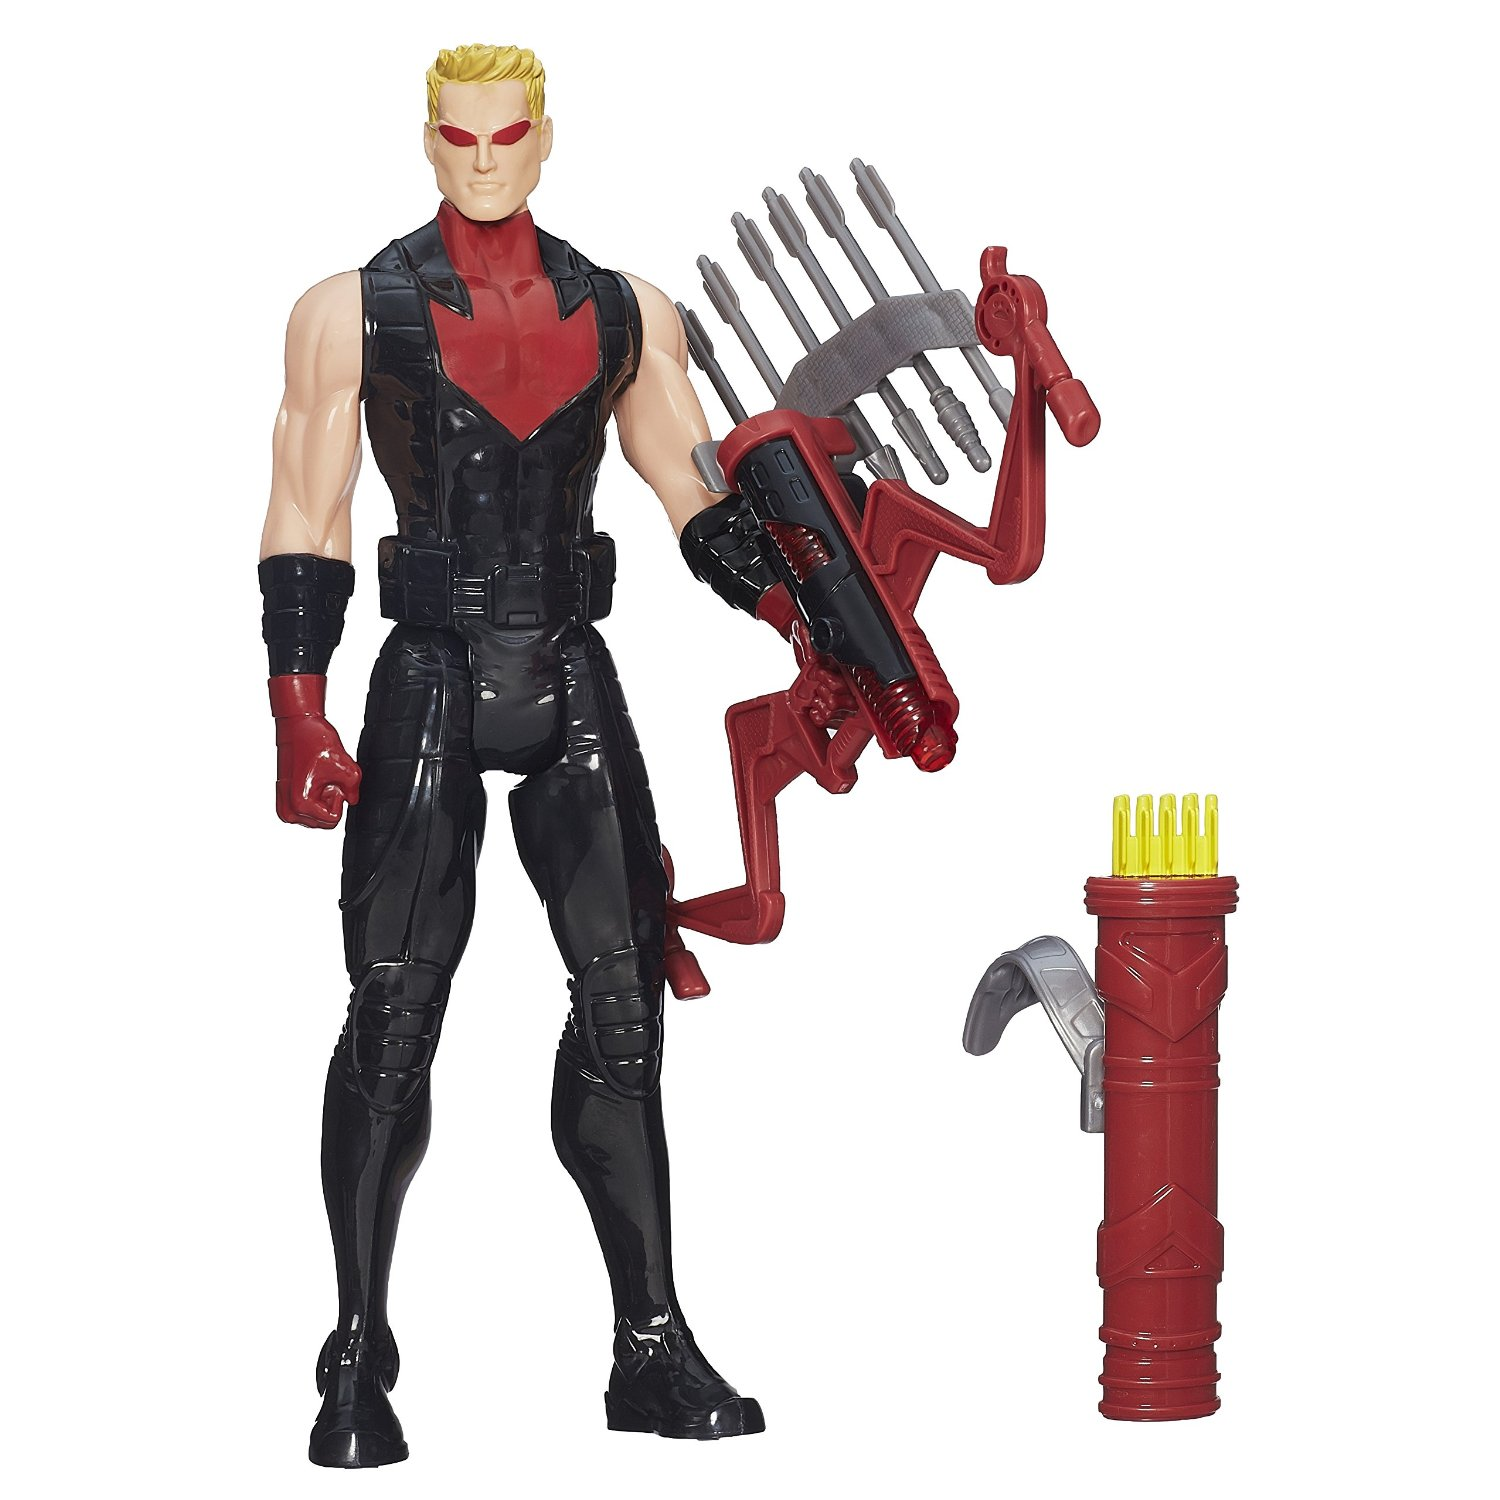 "Avengers Titan Hero Series Lightning Bow Hawkeye Exclusive 12"" Action Figure"